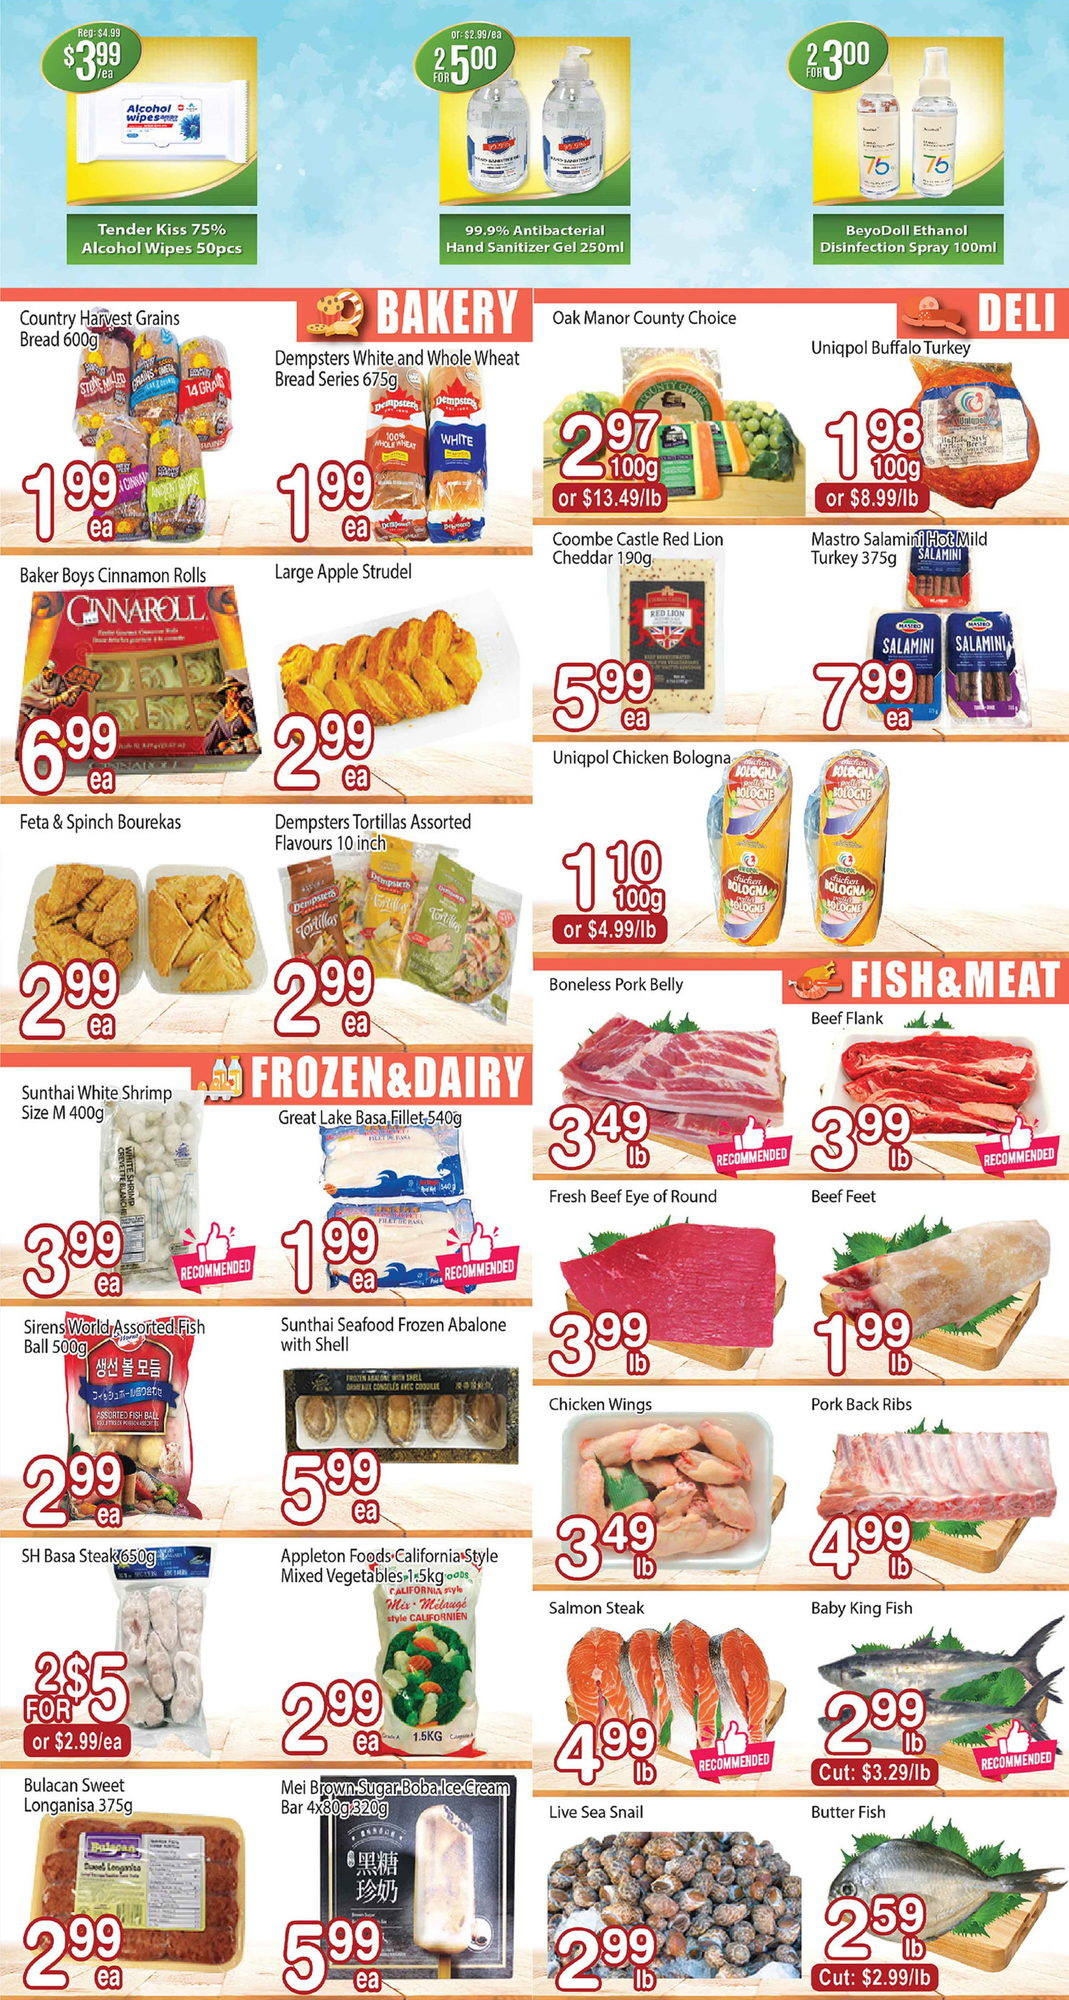 Nations Fresh Foods - Weekly Flyer Specials - Page 2